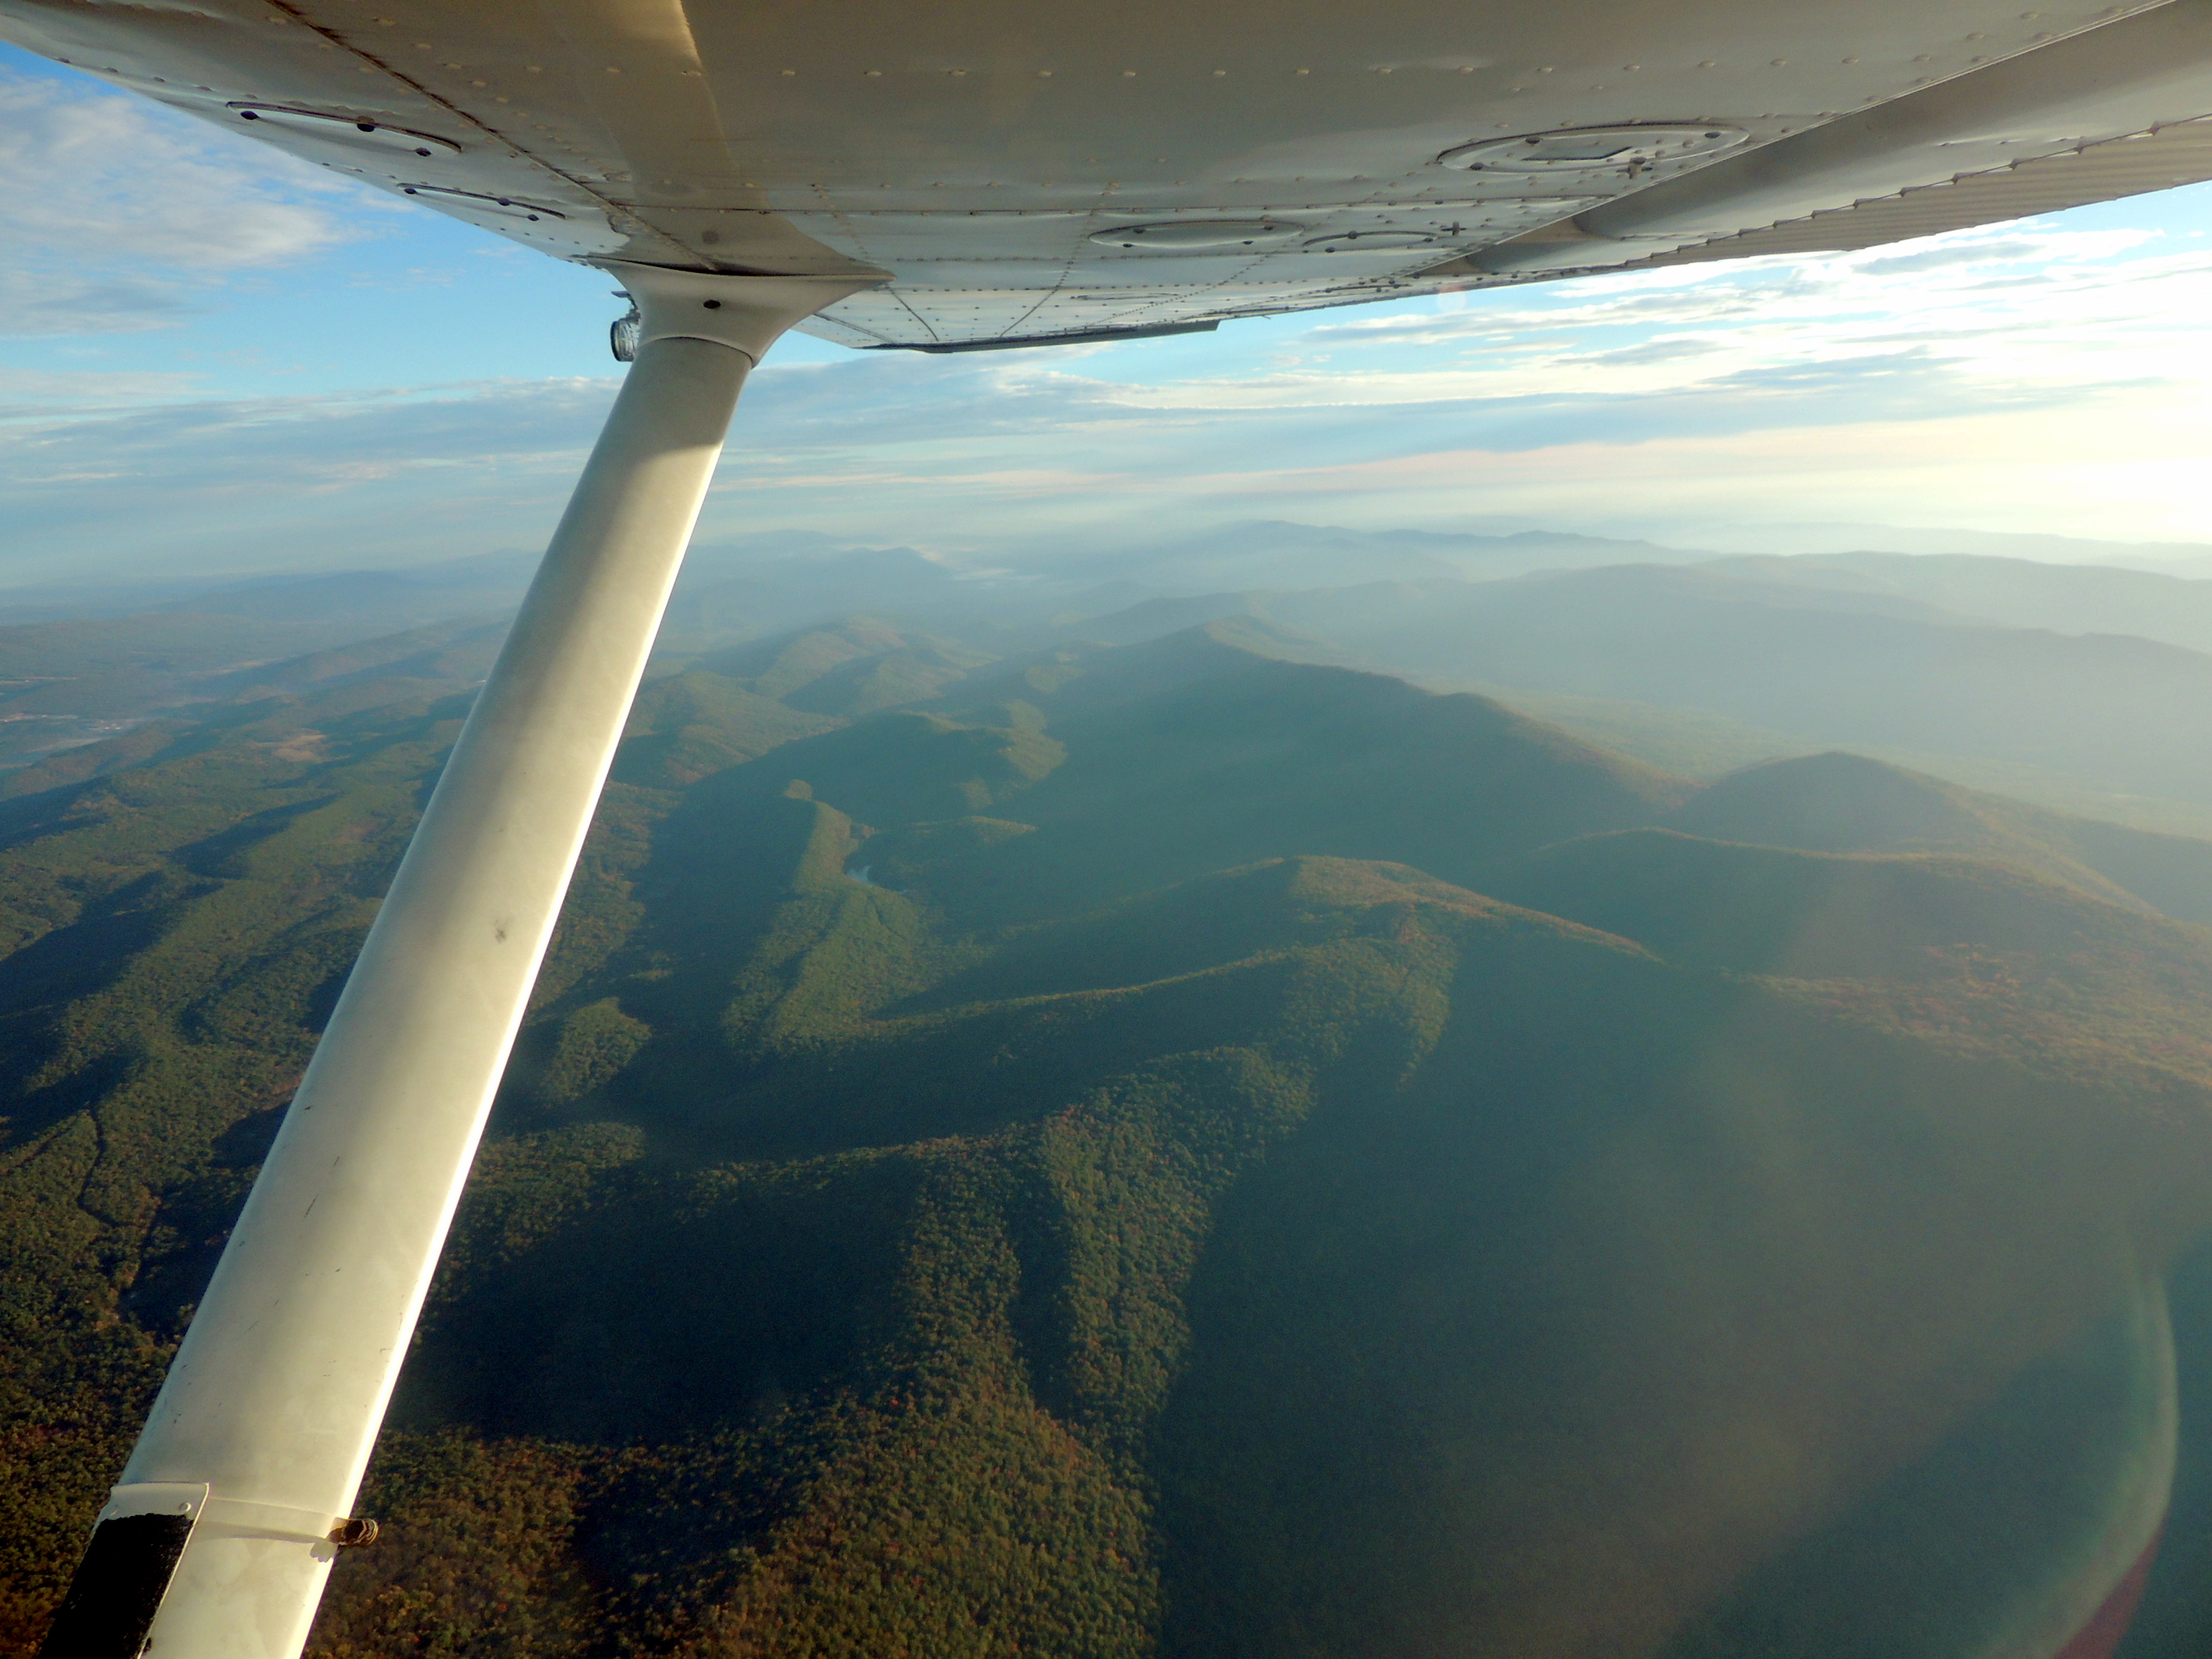 Looking north over the beautiful Appalachian Mountains